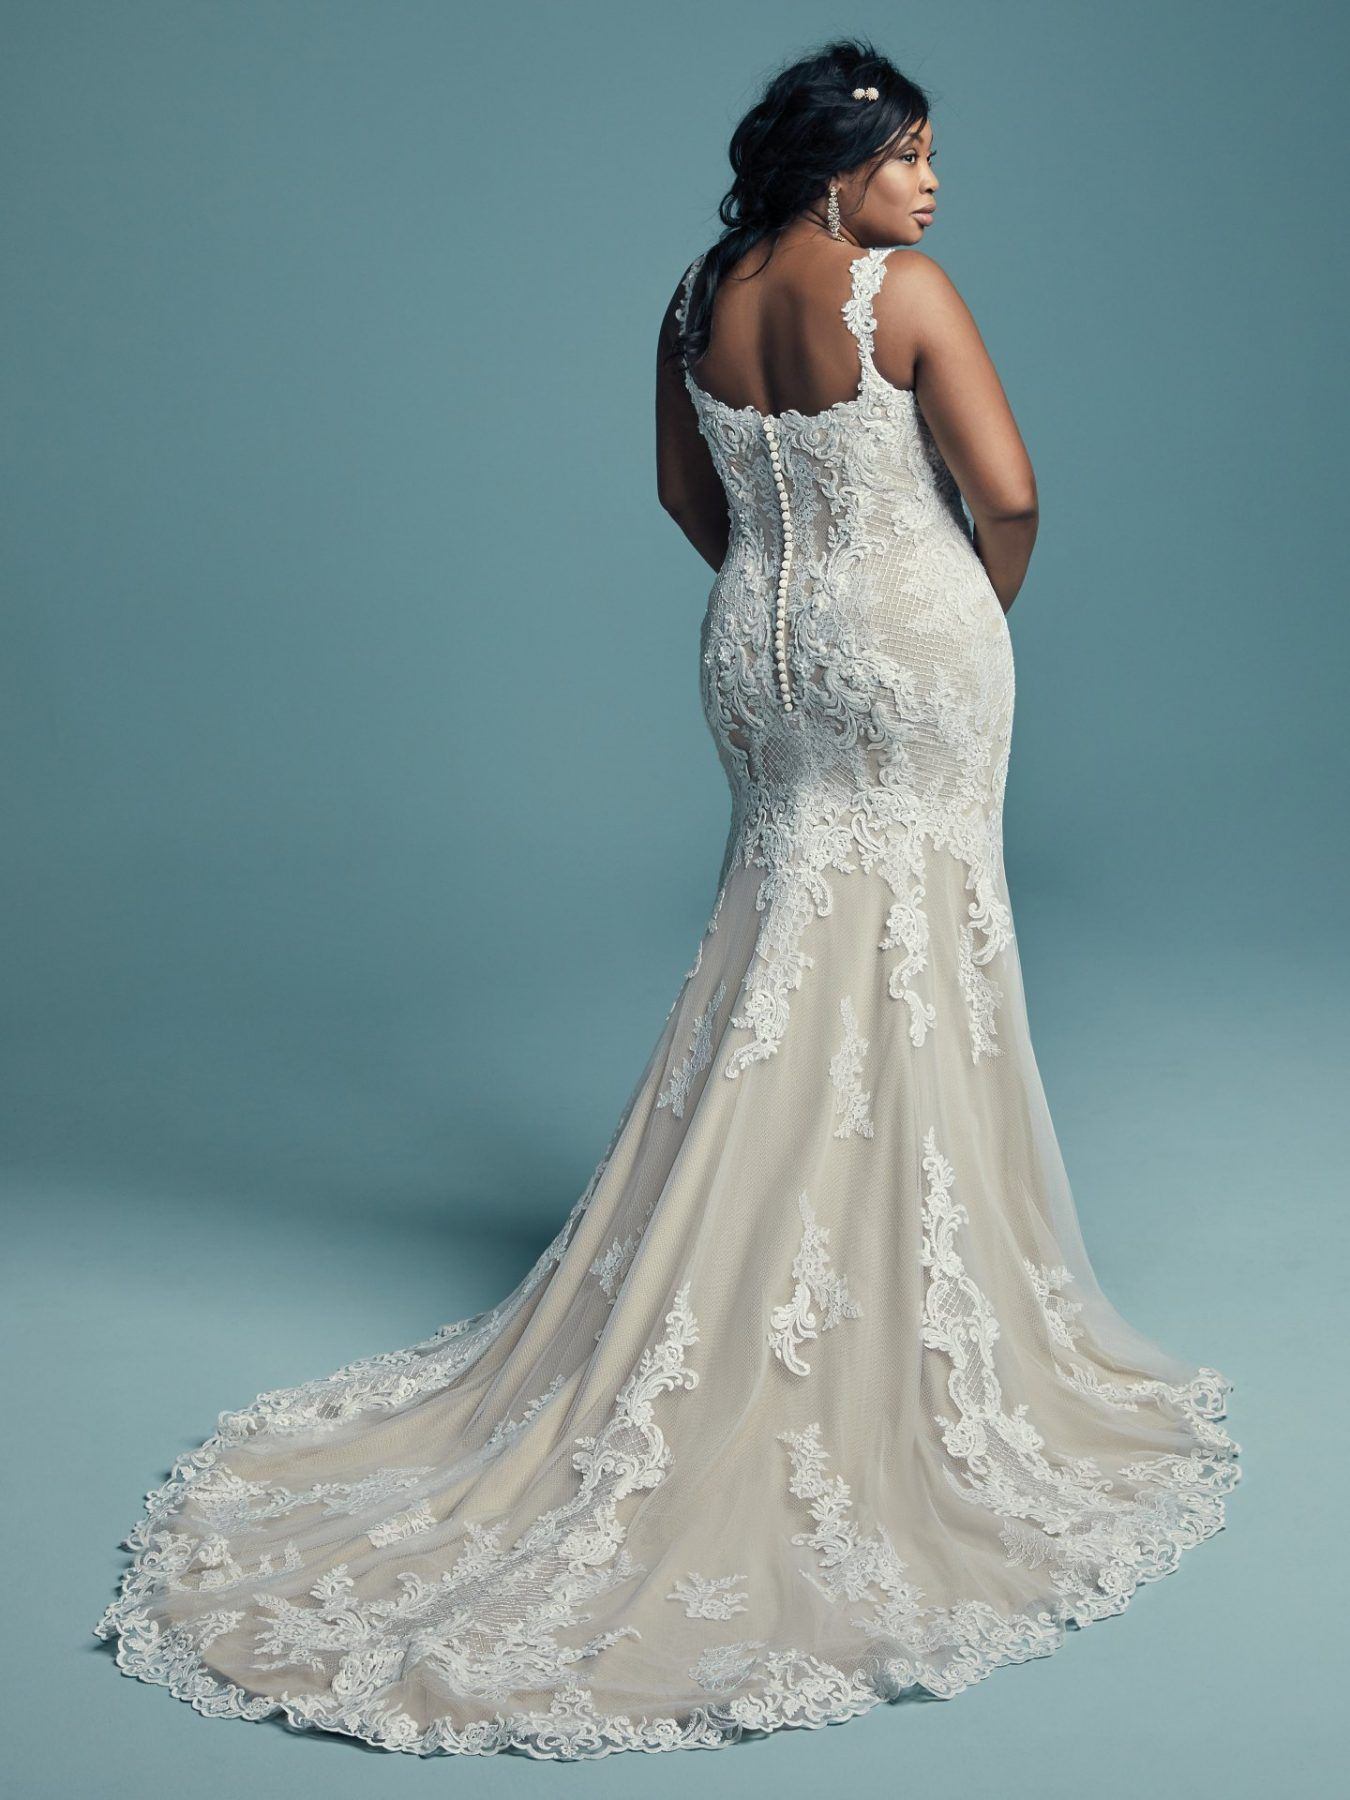 Lace Strapped Sweetheart Neckline Fit And Flare Wedding Dress